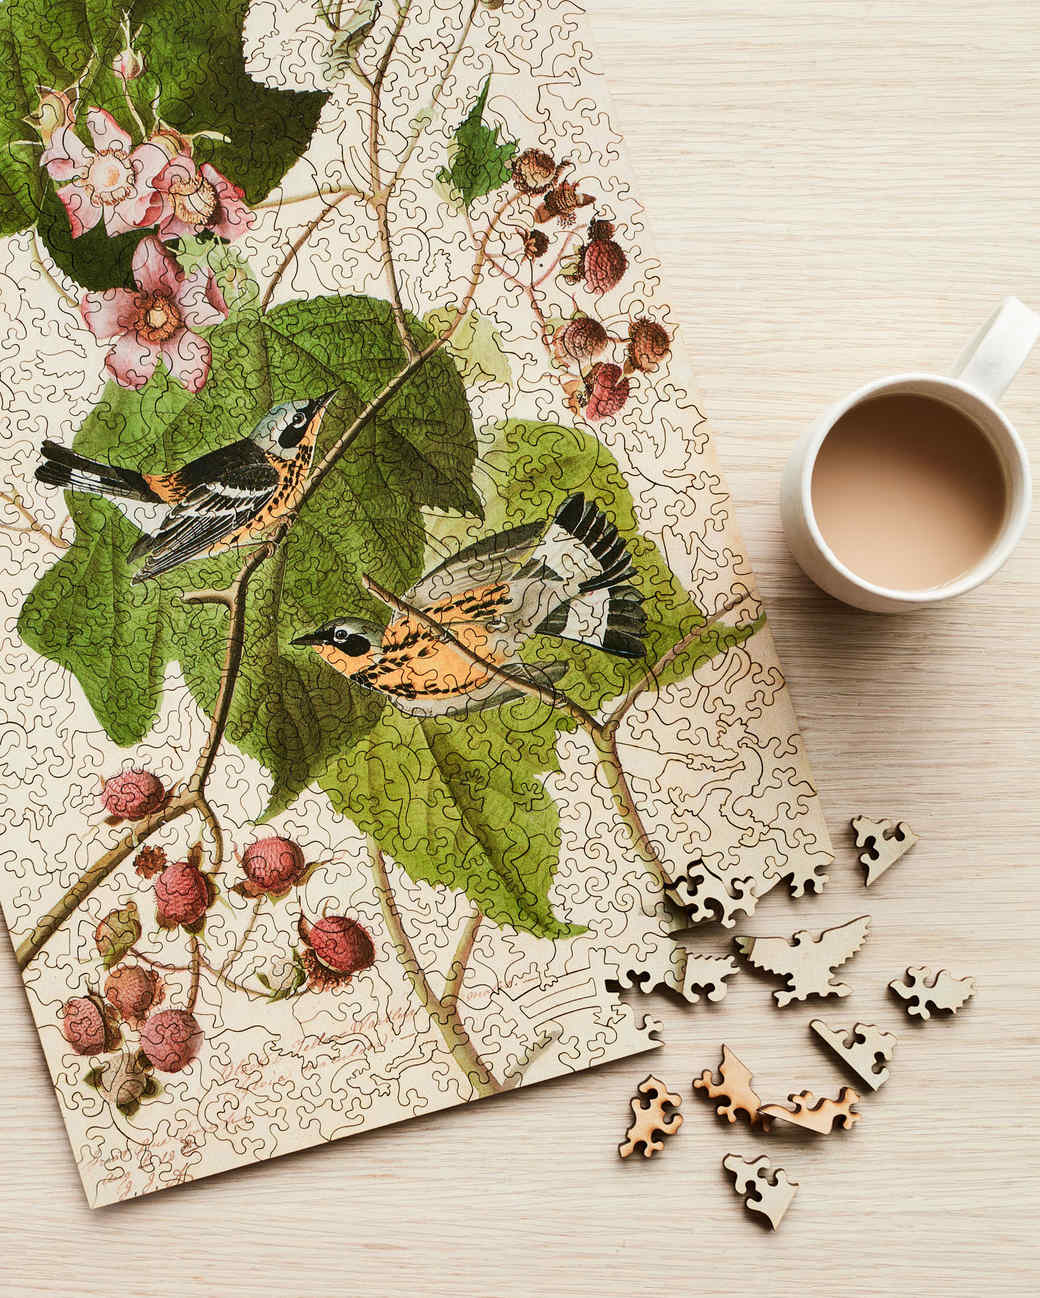 liberty wooden puzzle of a bird